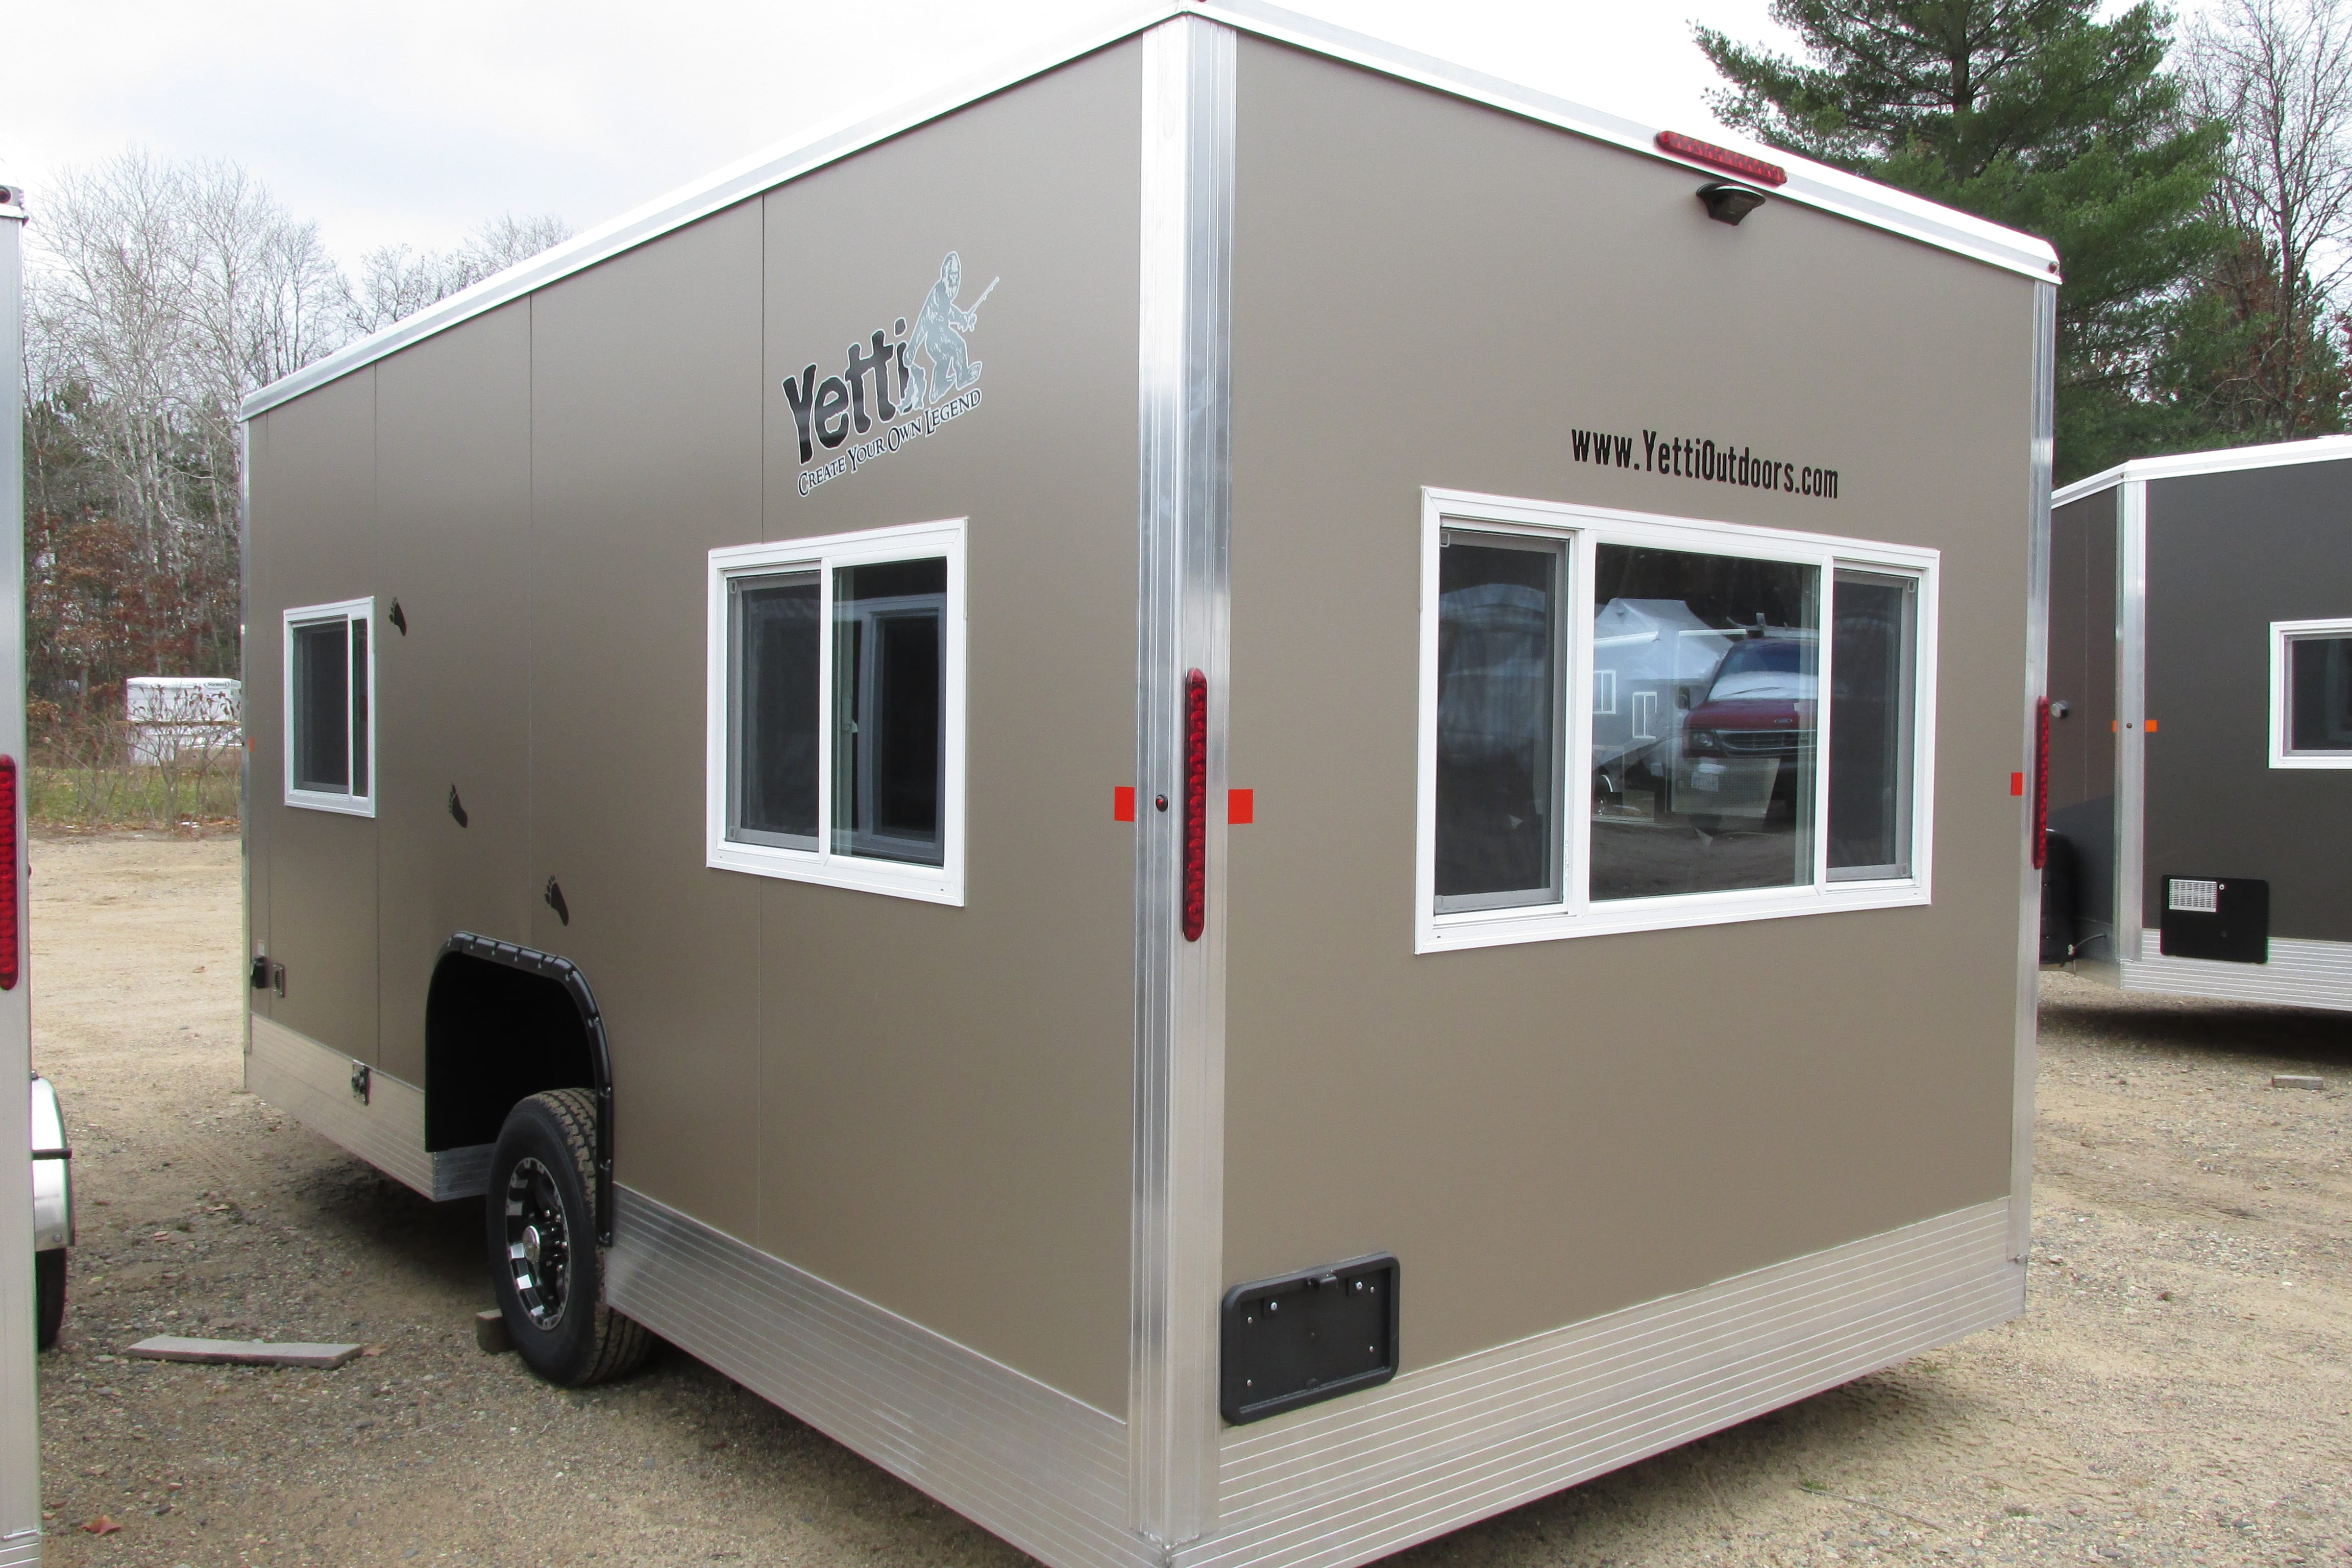 2018 single axle yetti fish house for sale in minnesota for Fish house axles